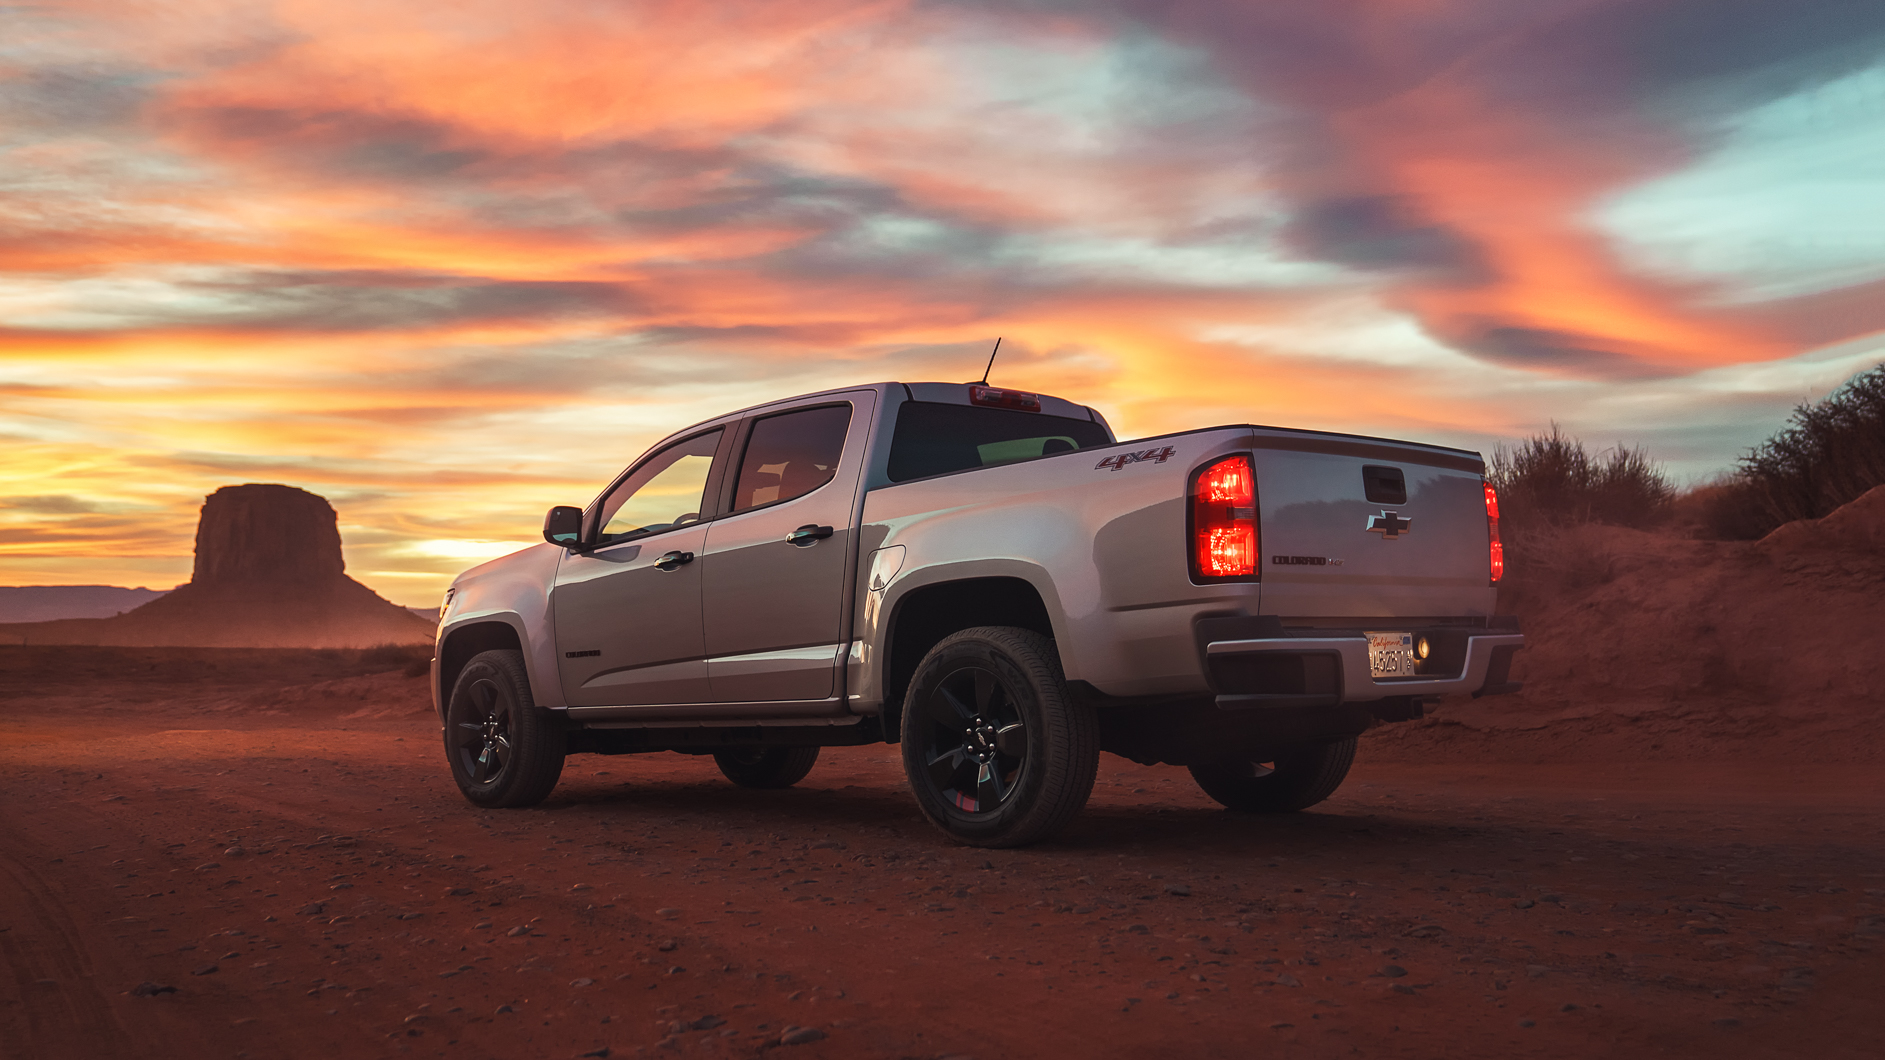 RP - Chevrolet Colorado Redline Moab Monument Valley Arizona Utah Vegas-5.jpg